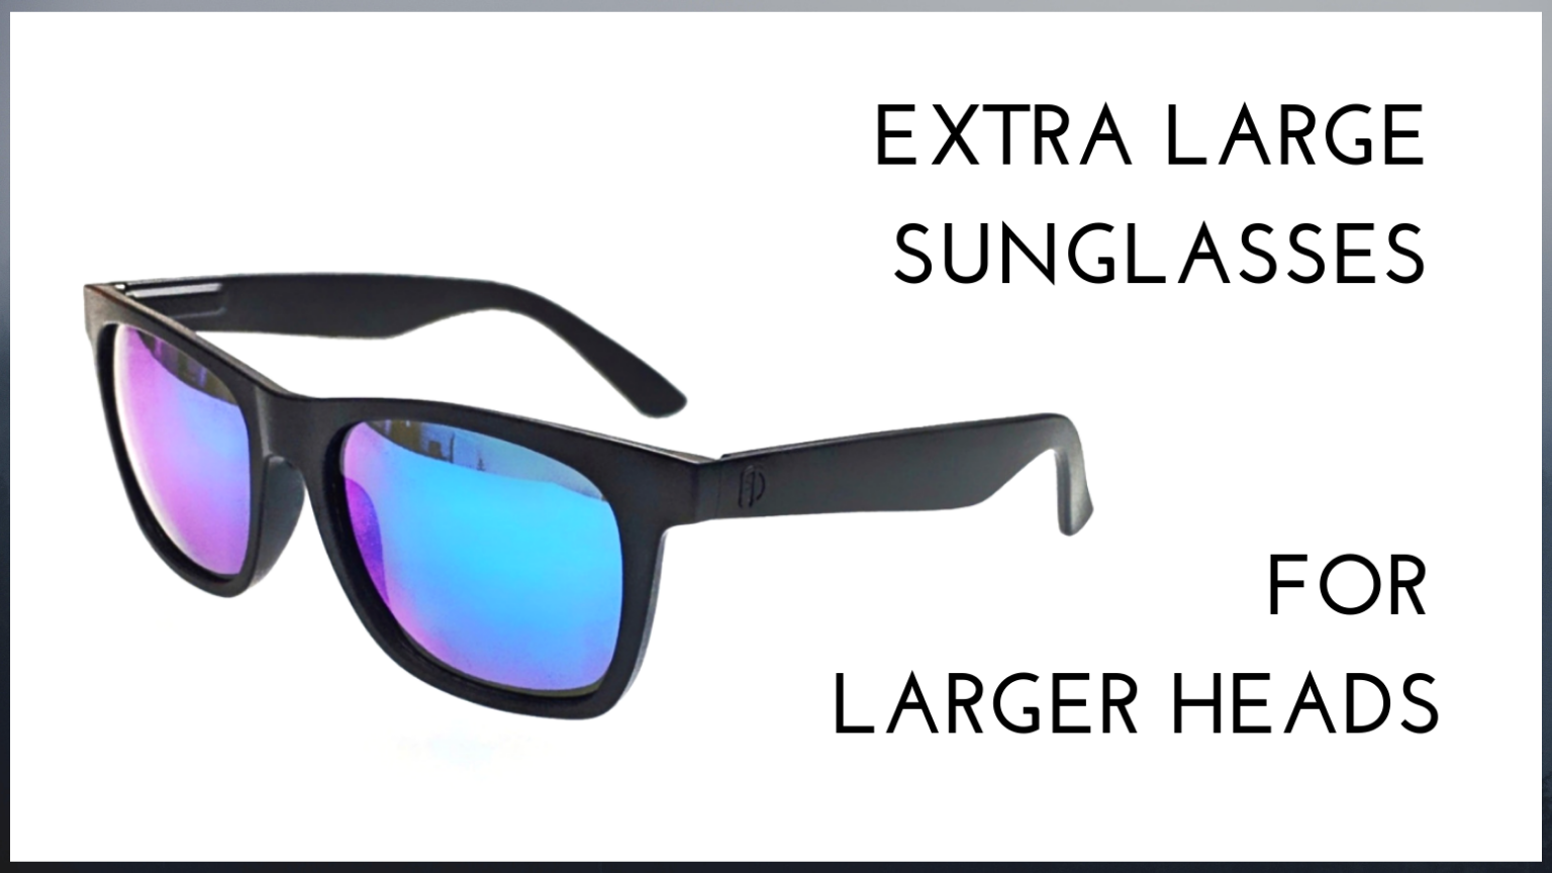 83b6d792c7 Extra large sunglasses for larger heads by Ben Saperia — Kickstarter